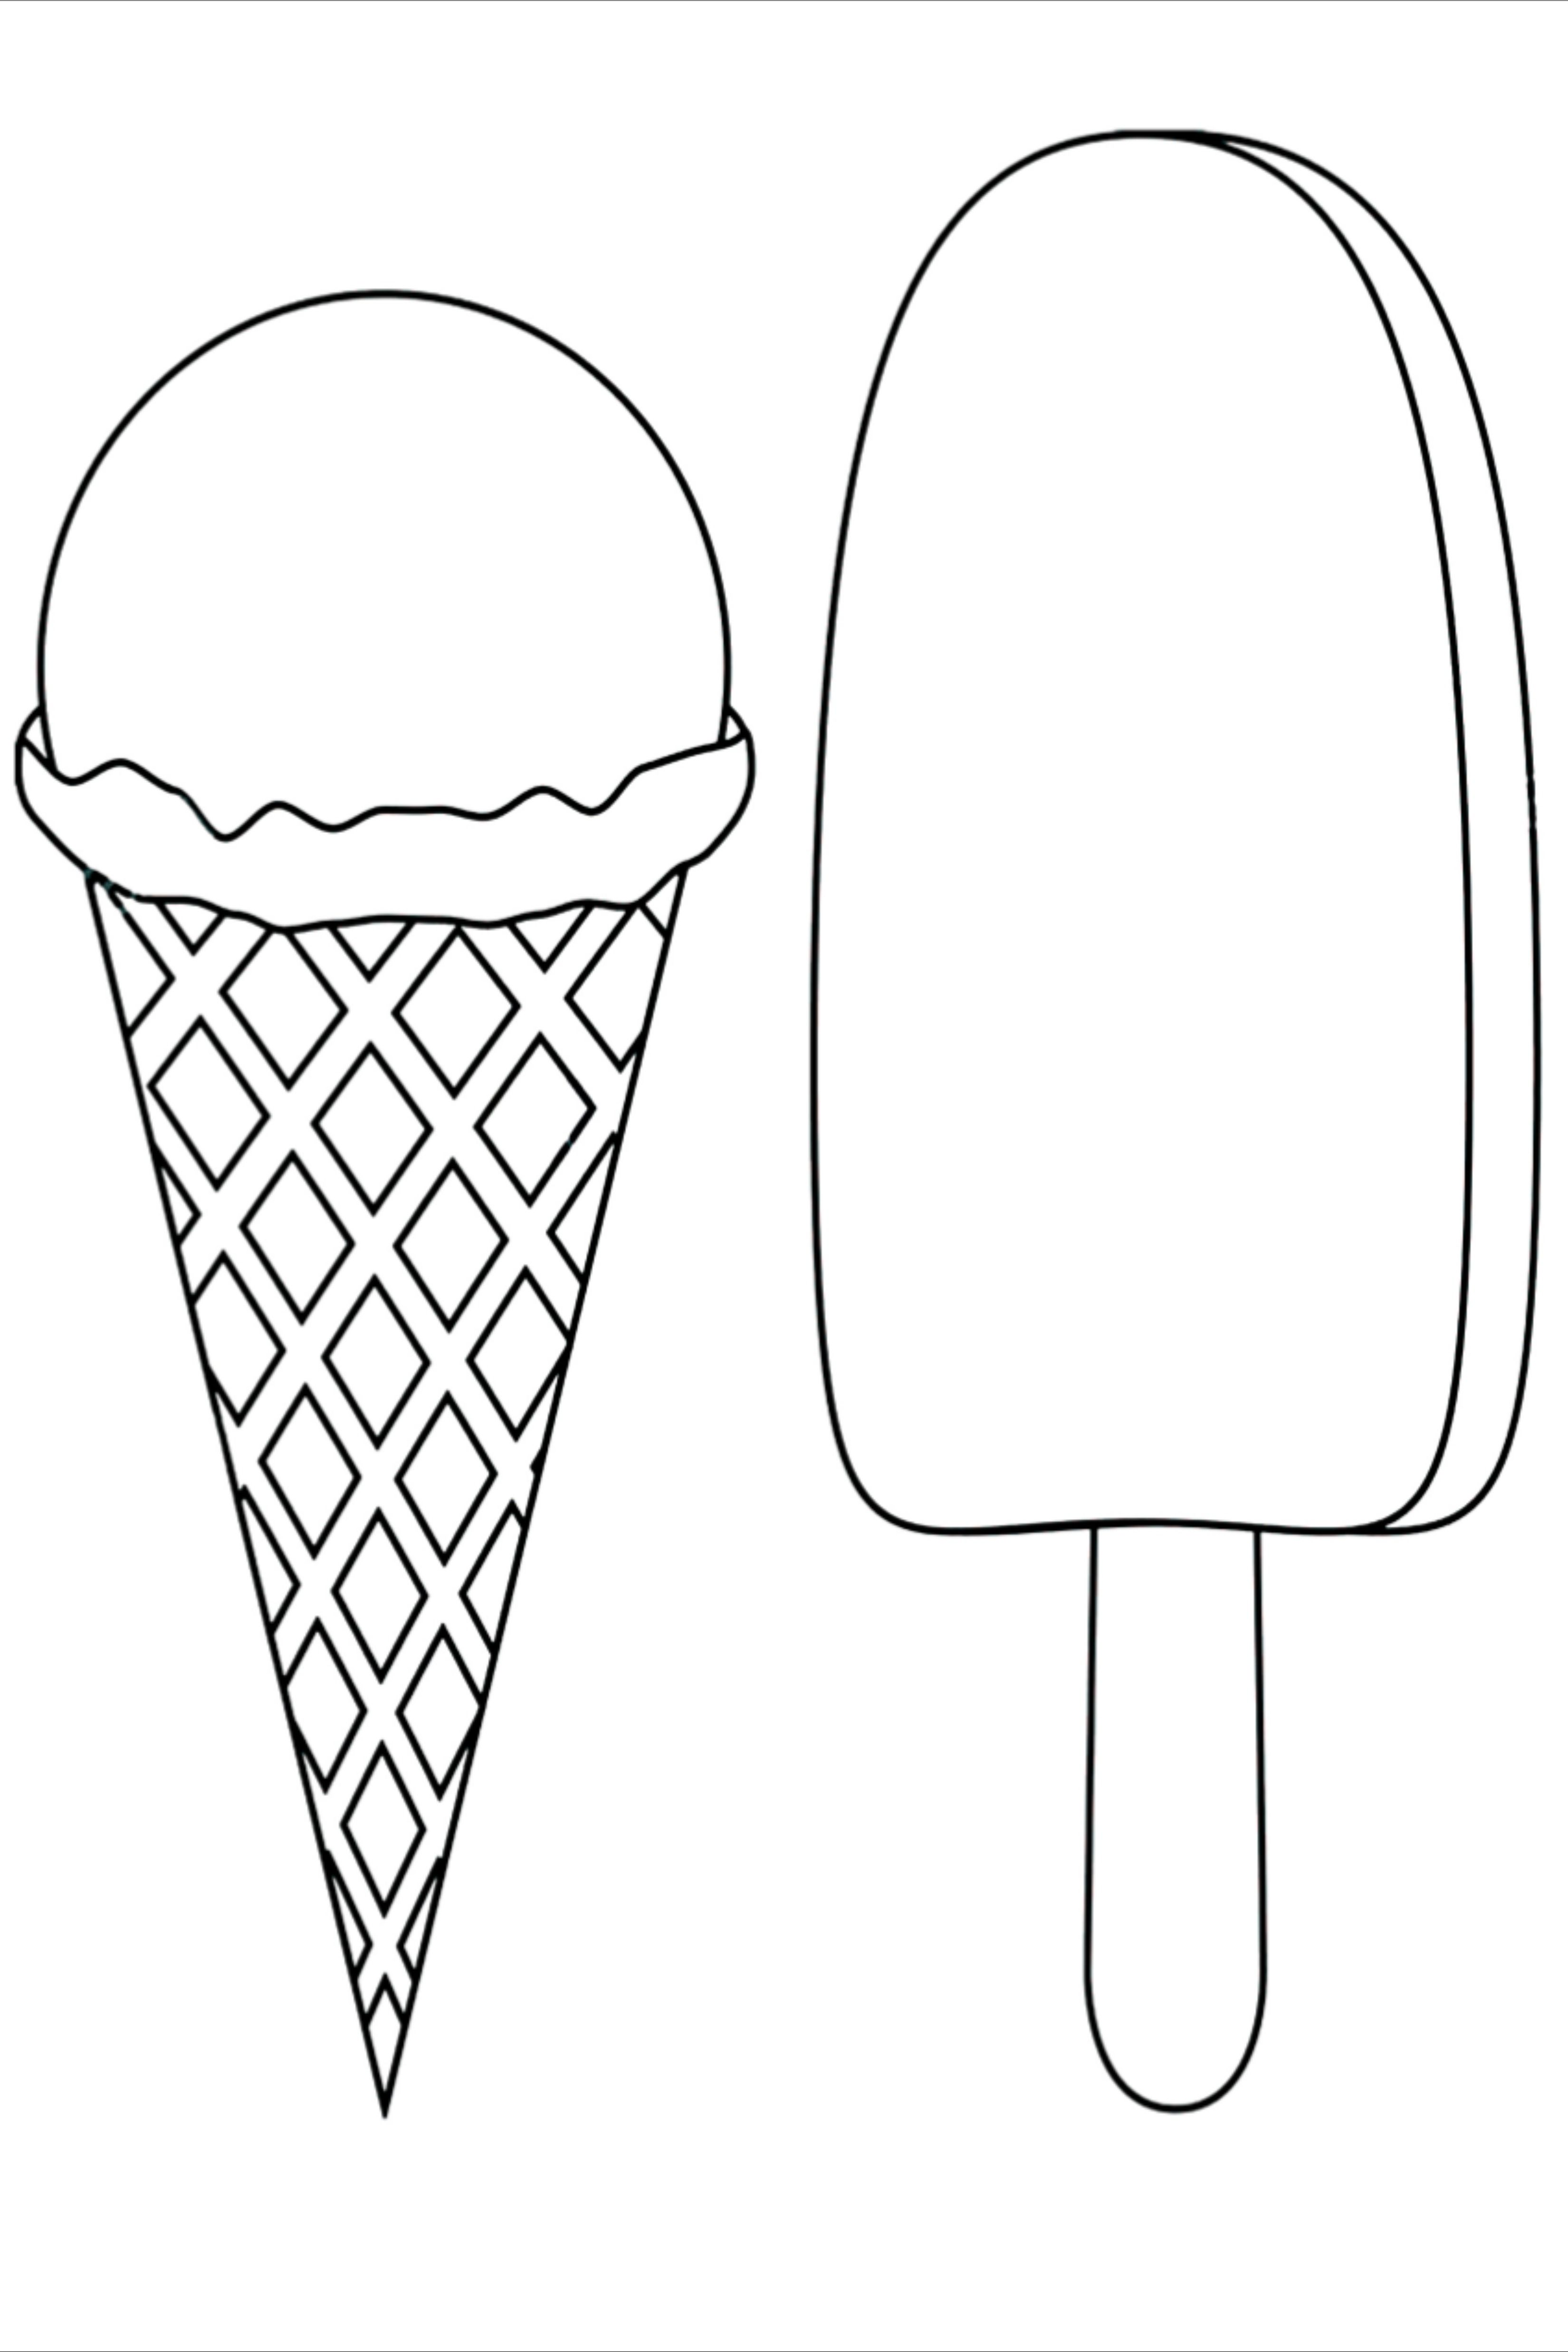 50 Ice Cream Coloring Pages For Kids Ice Cream Coloring Pages Coloring Pages Coloring Pages For Kids